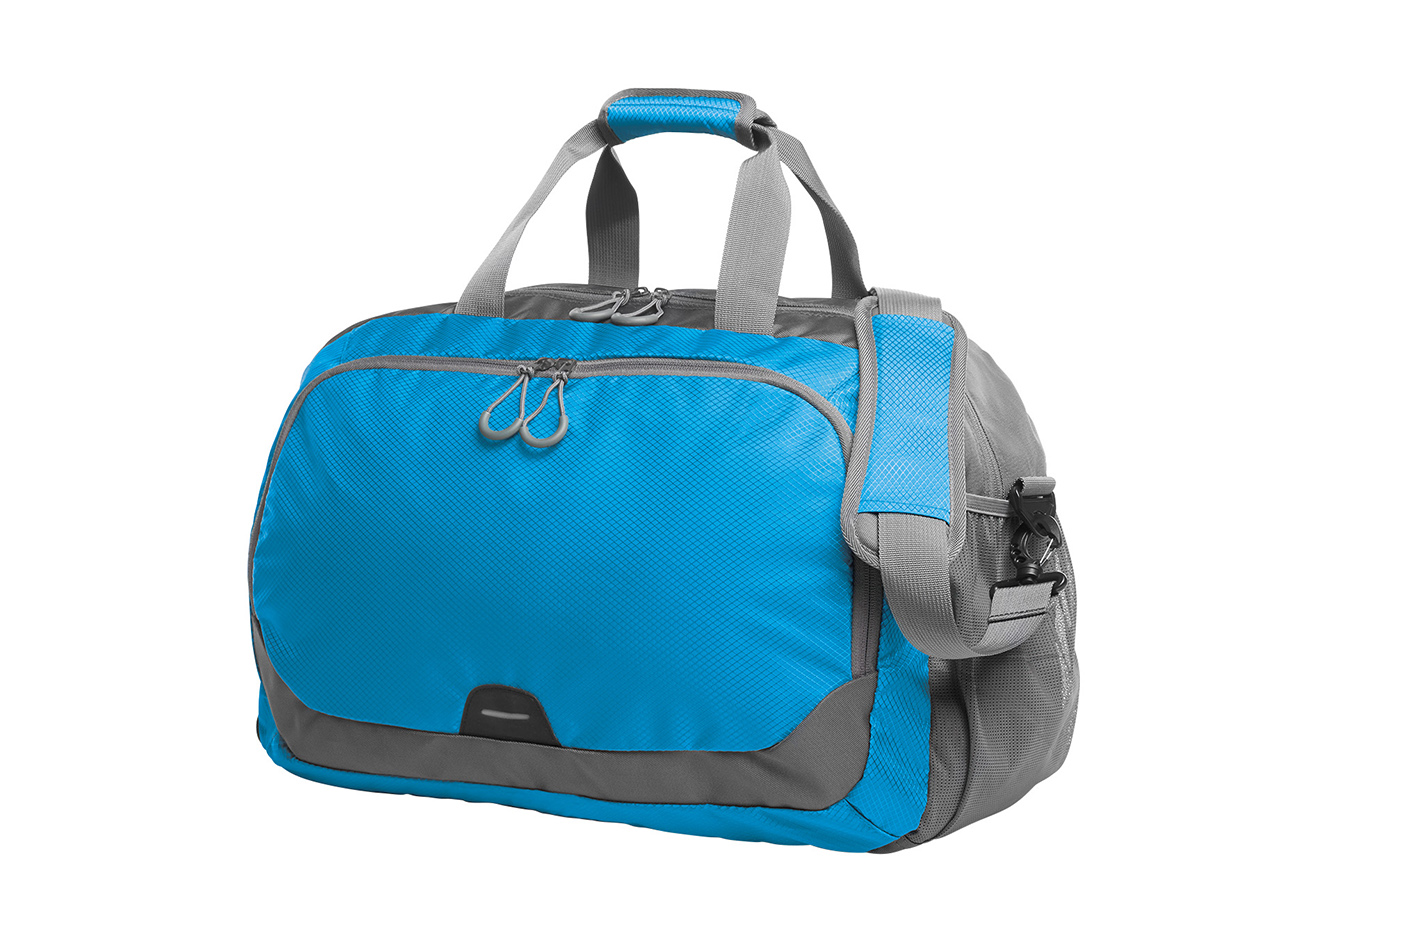 Blue and Grey Travel Bag STEP